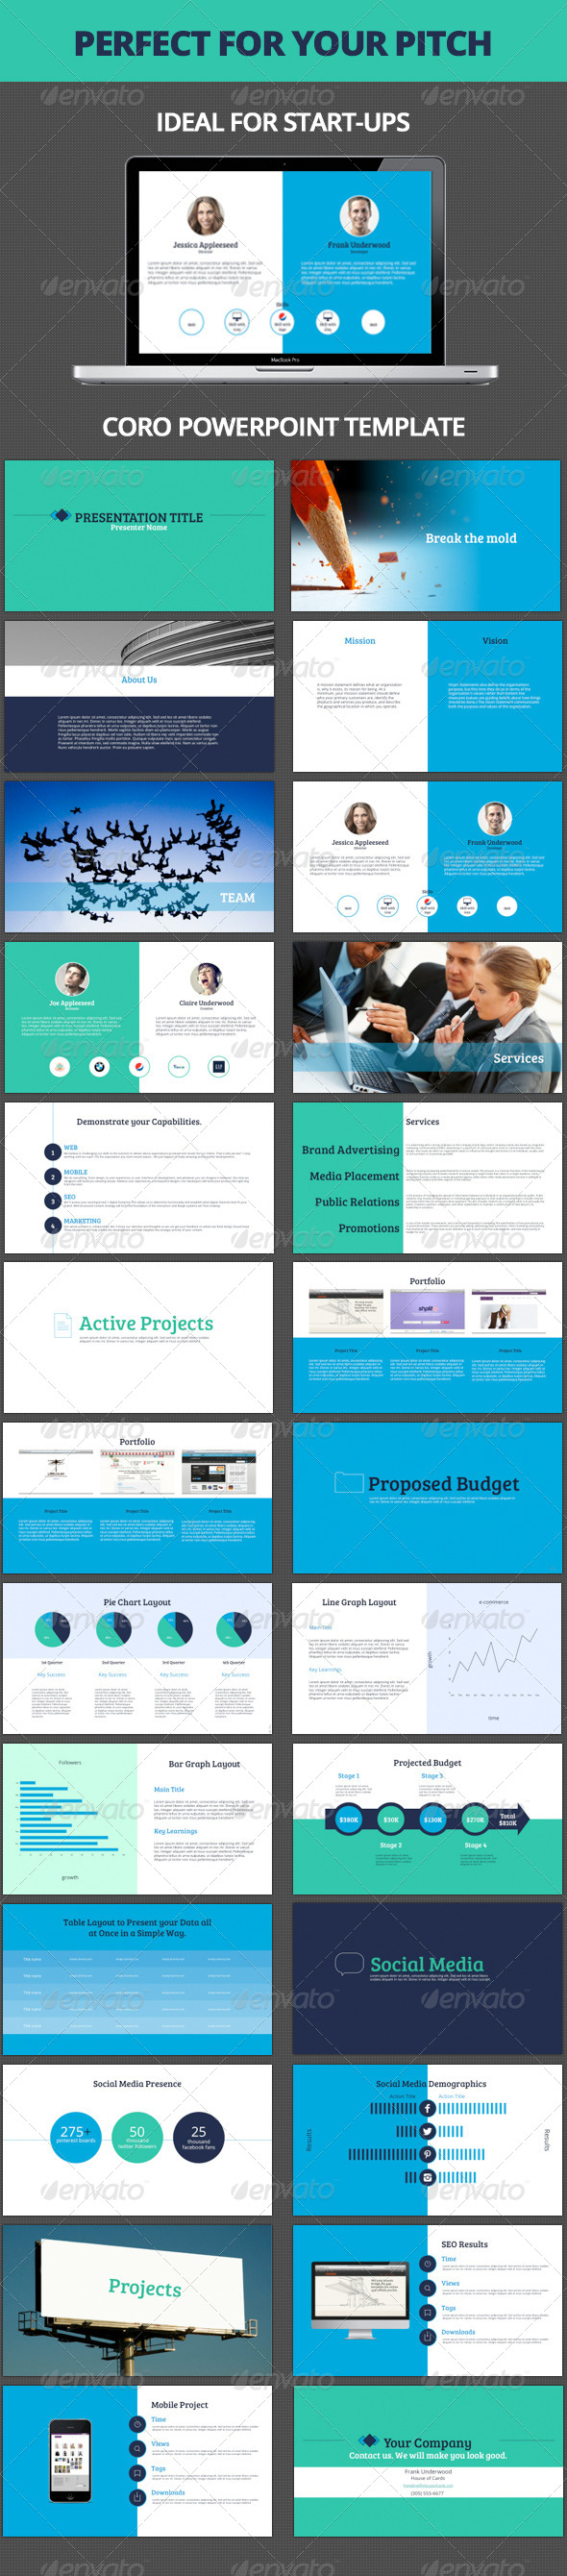 GraphicRiver Coro Powerpoint Template 5283203